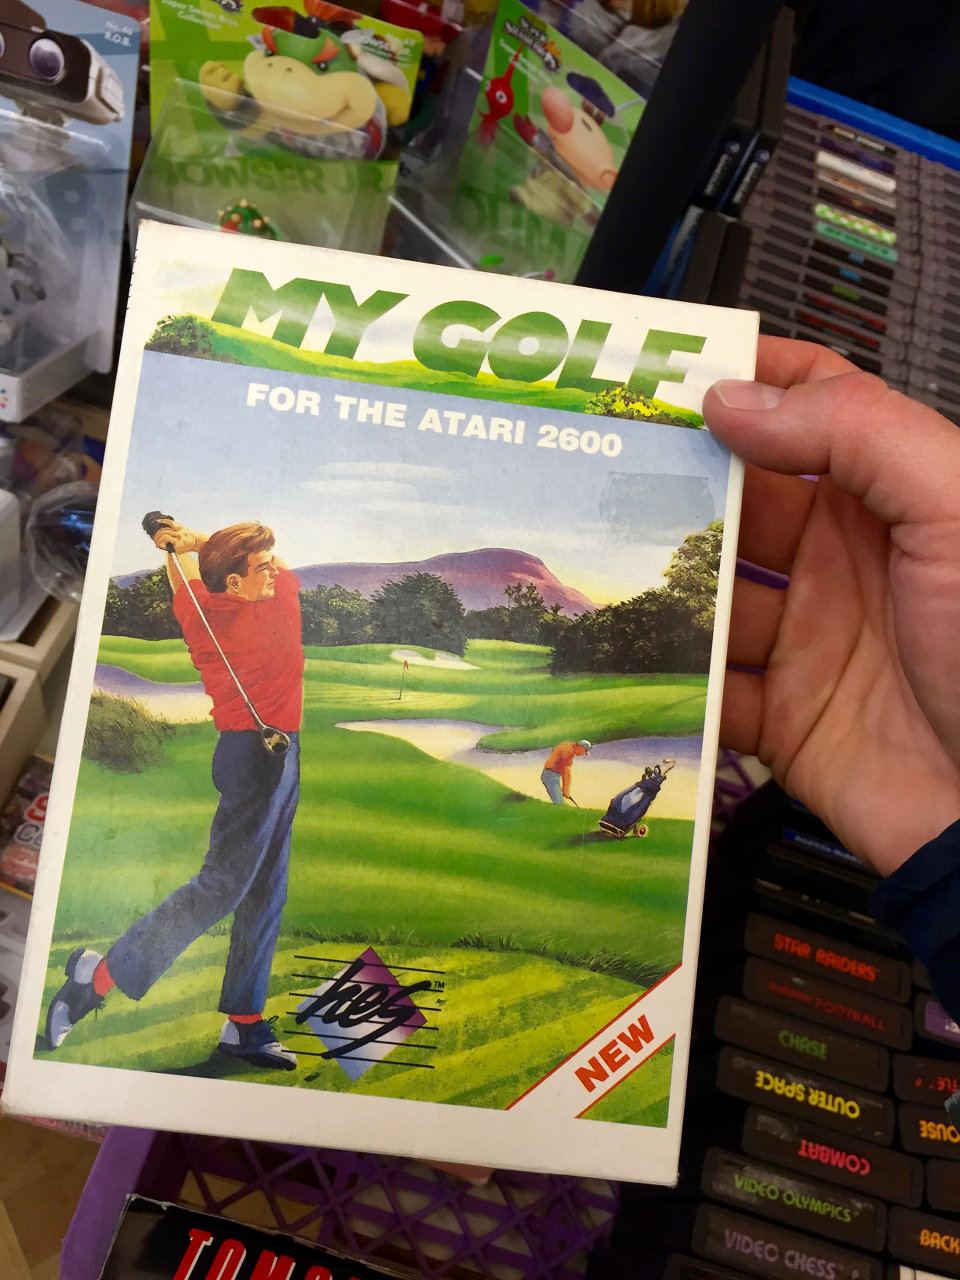 My Golf für das Atari VCS von HES - Home Entertainment Suppliers. (Bild: André Eymann)